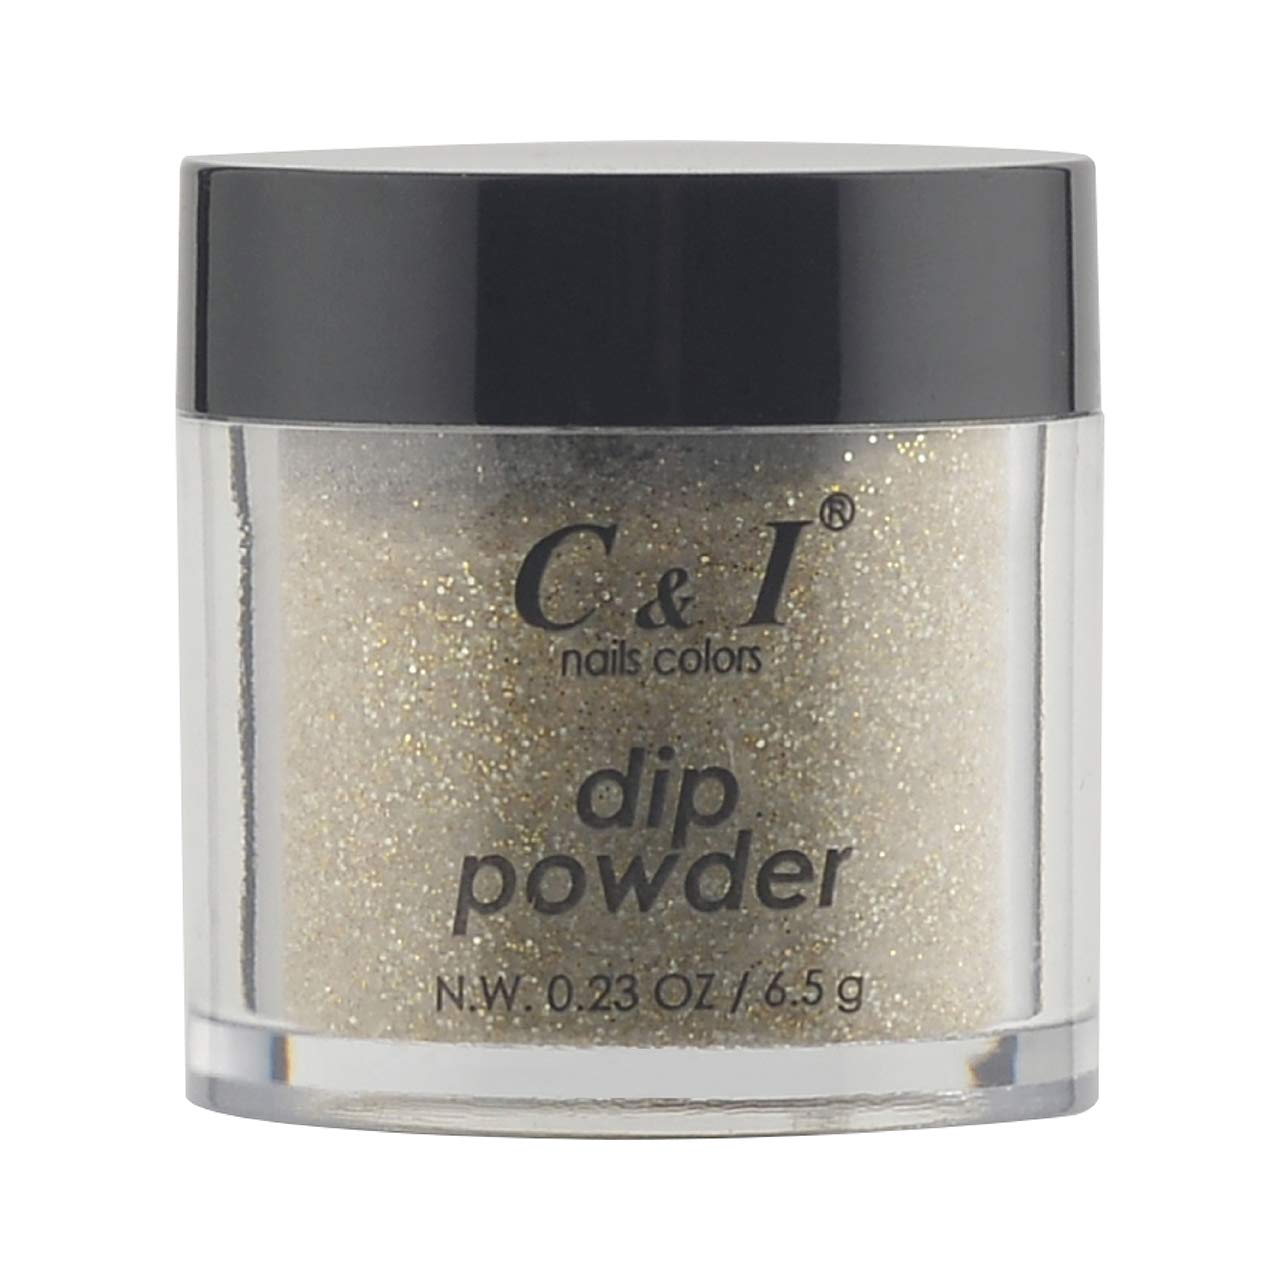 C & I Dipping Powder, Nail Colors, Gel Effect, Color # 62 Gold Coast, 0.23 oz, 6.5 g, Pearl Shine Color System (4 pcs)